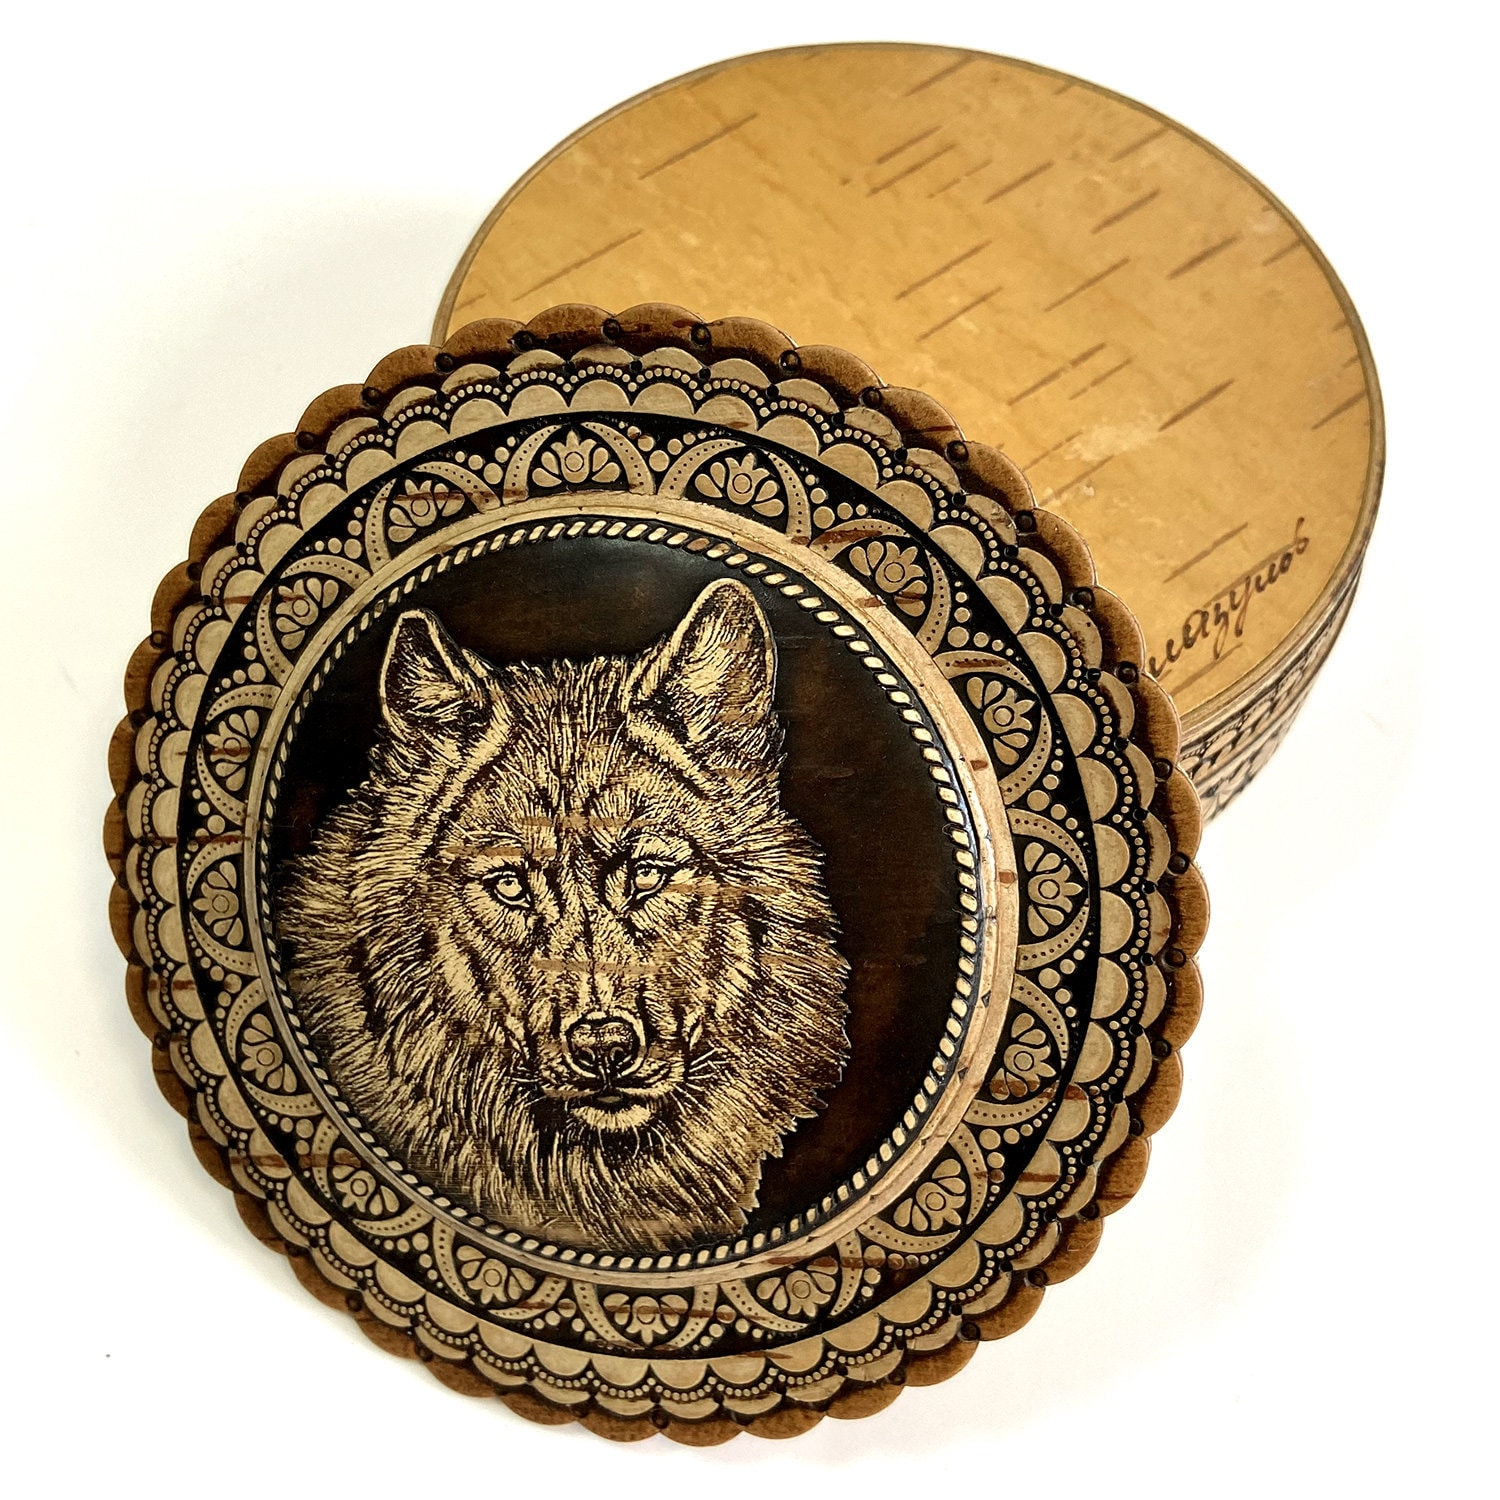 Handmade birch bark box. This box is hand made with the image of a wolf. Jewelry box. Casket for lovers of wild animals.